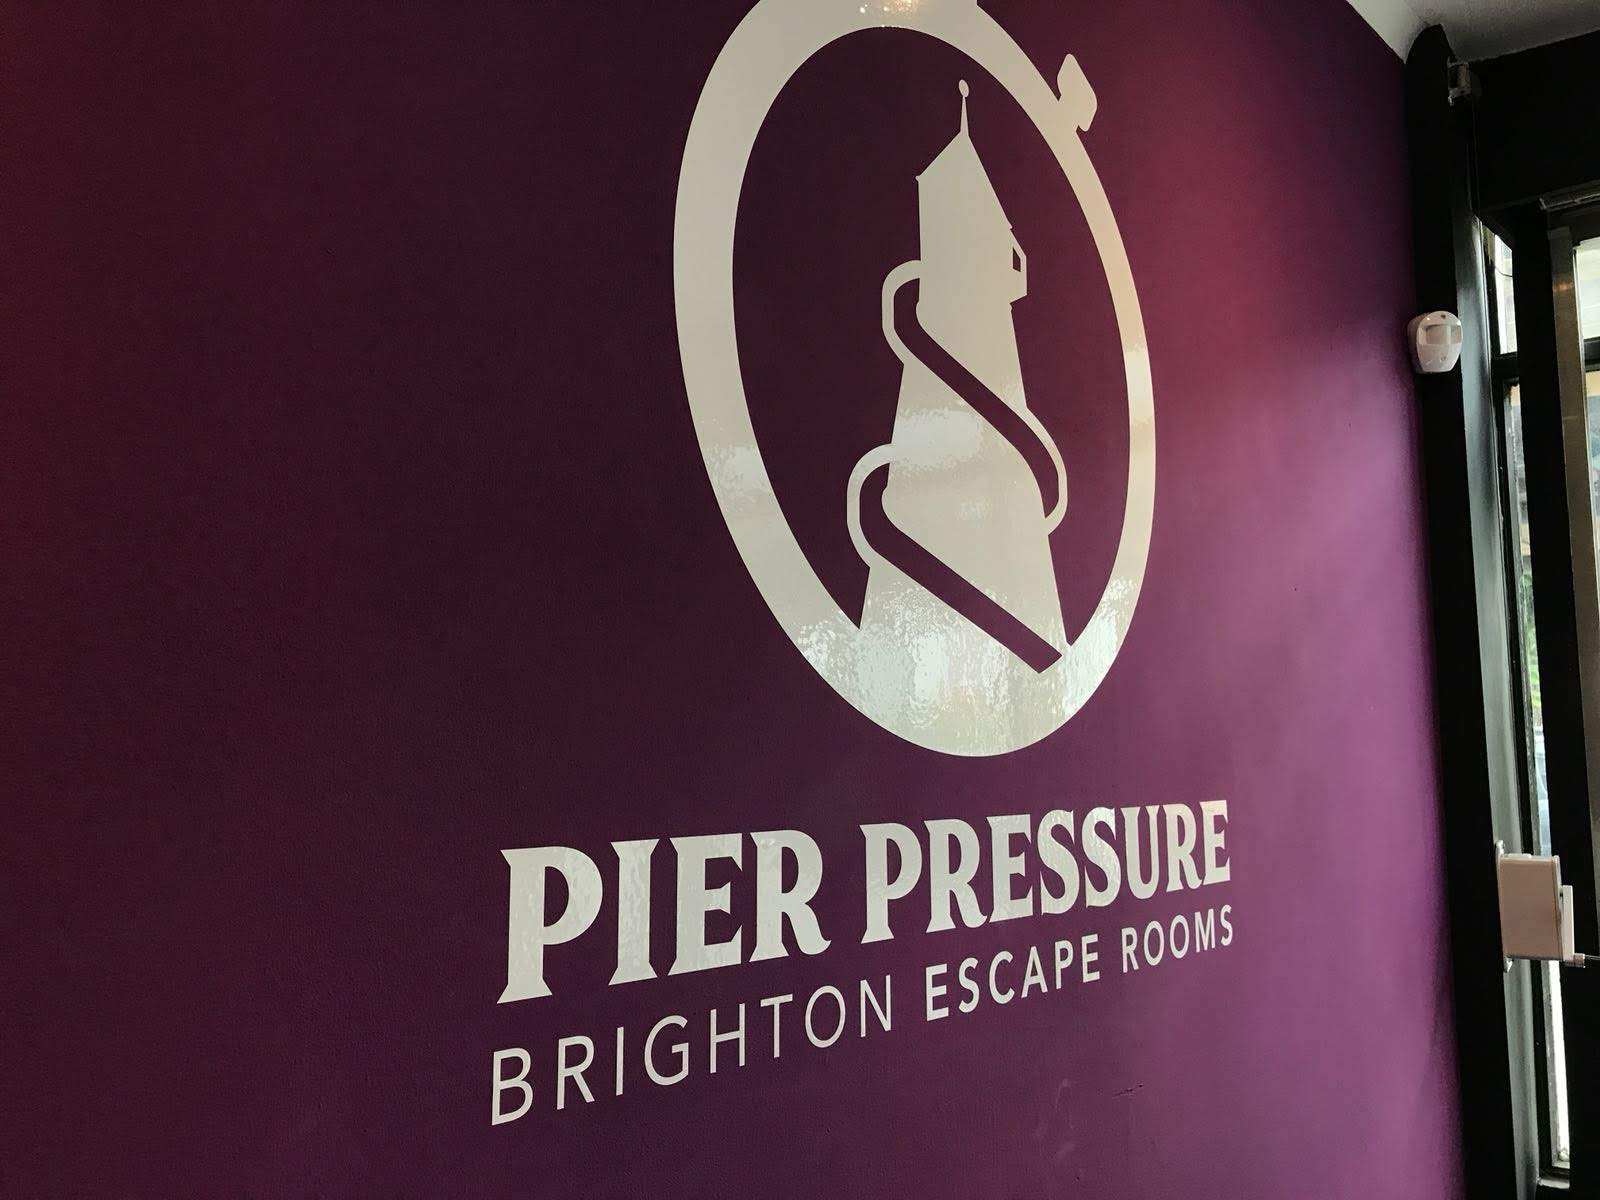 Pier Pressure logo on the wall in their lobby